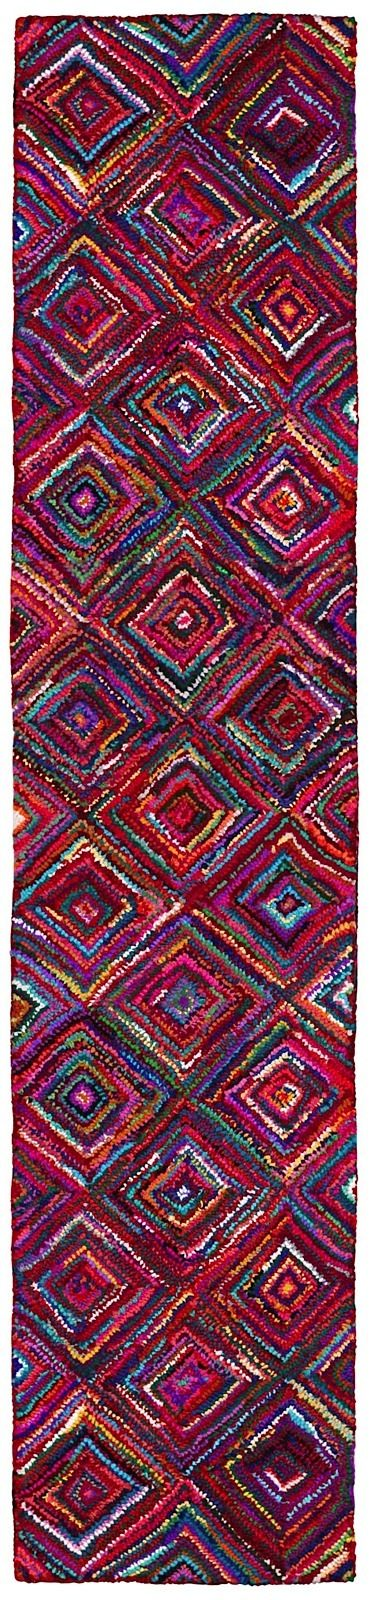 st croix trading brilliant ribbon contemporary area rug collection